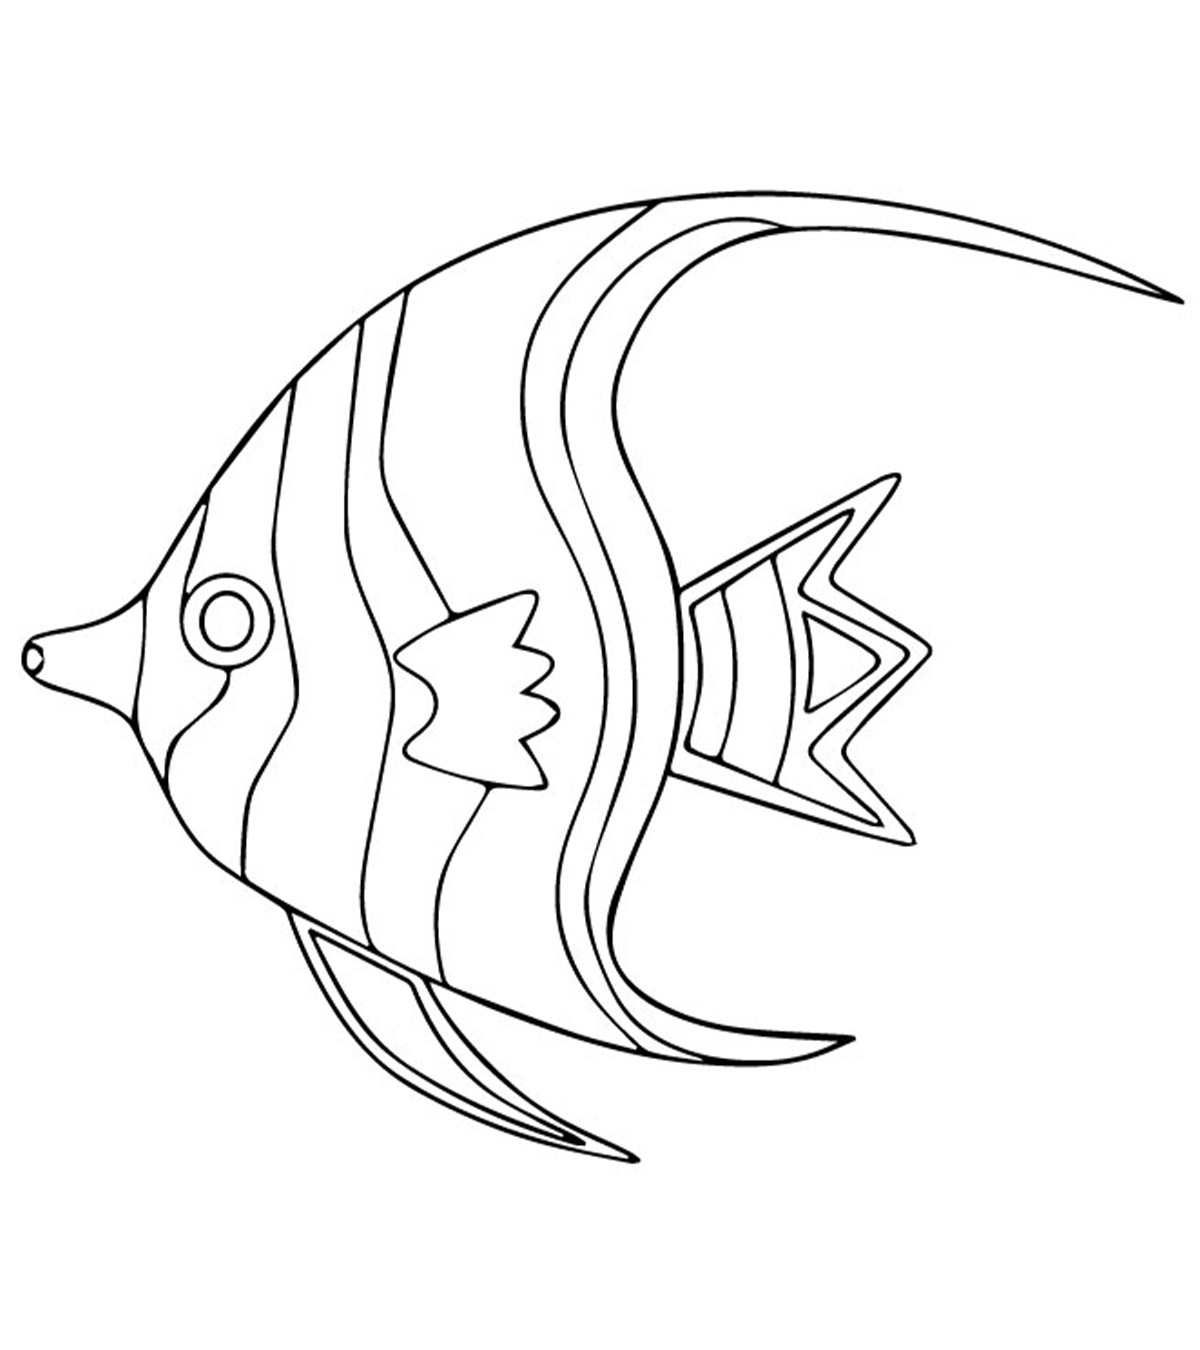 Crayola Fish Coloring Pages Coloring Pages Coloring Book Chance The Rapper Tracklist List Wiki